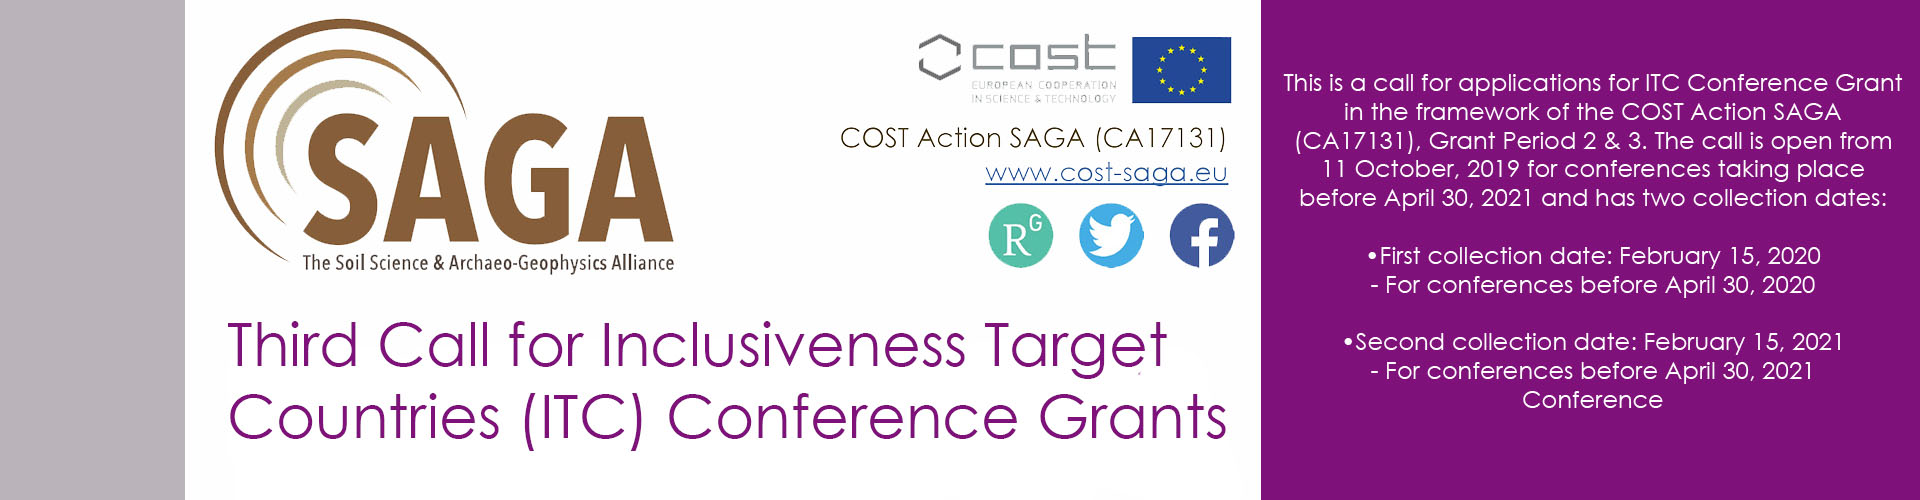 ***Third Call for Inclusiveness Target Countries (ITC) Conference Grants***